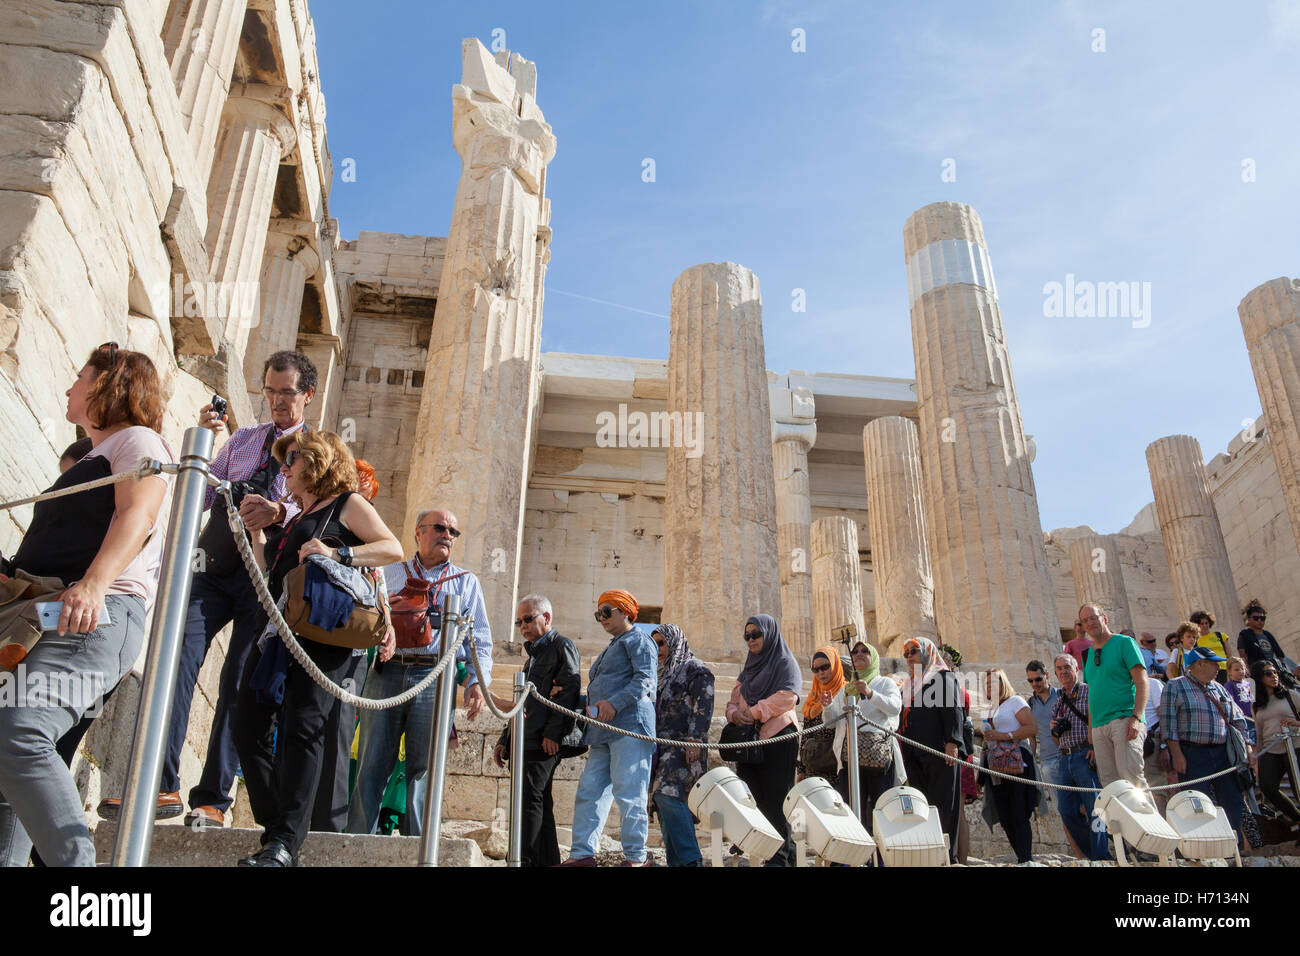 Tourists at the Propylaea, the monumental gateway to the Acropolis of Athens - Stock Image